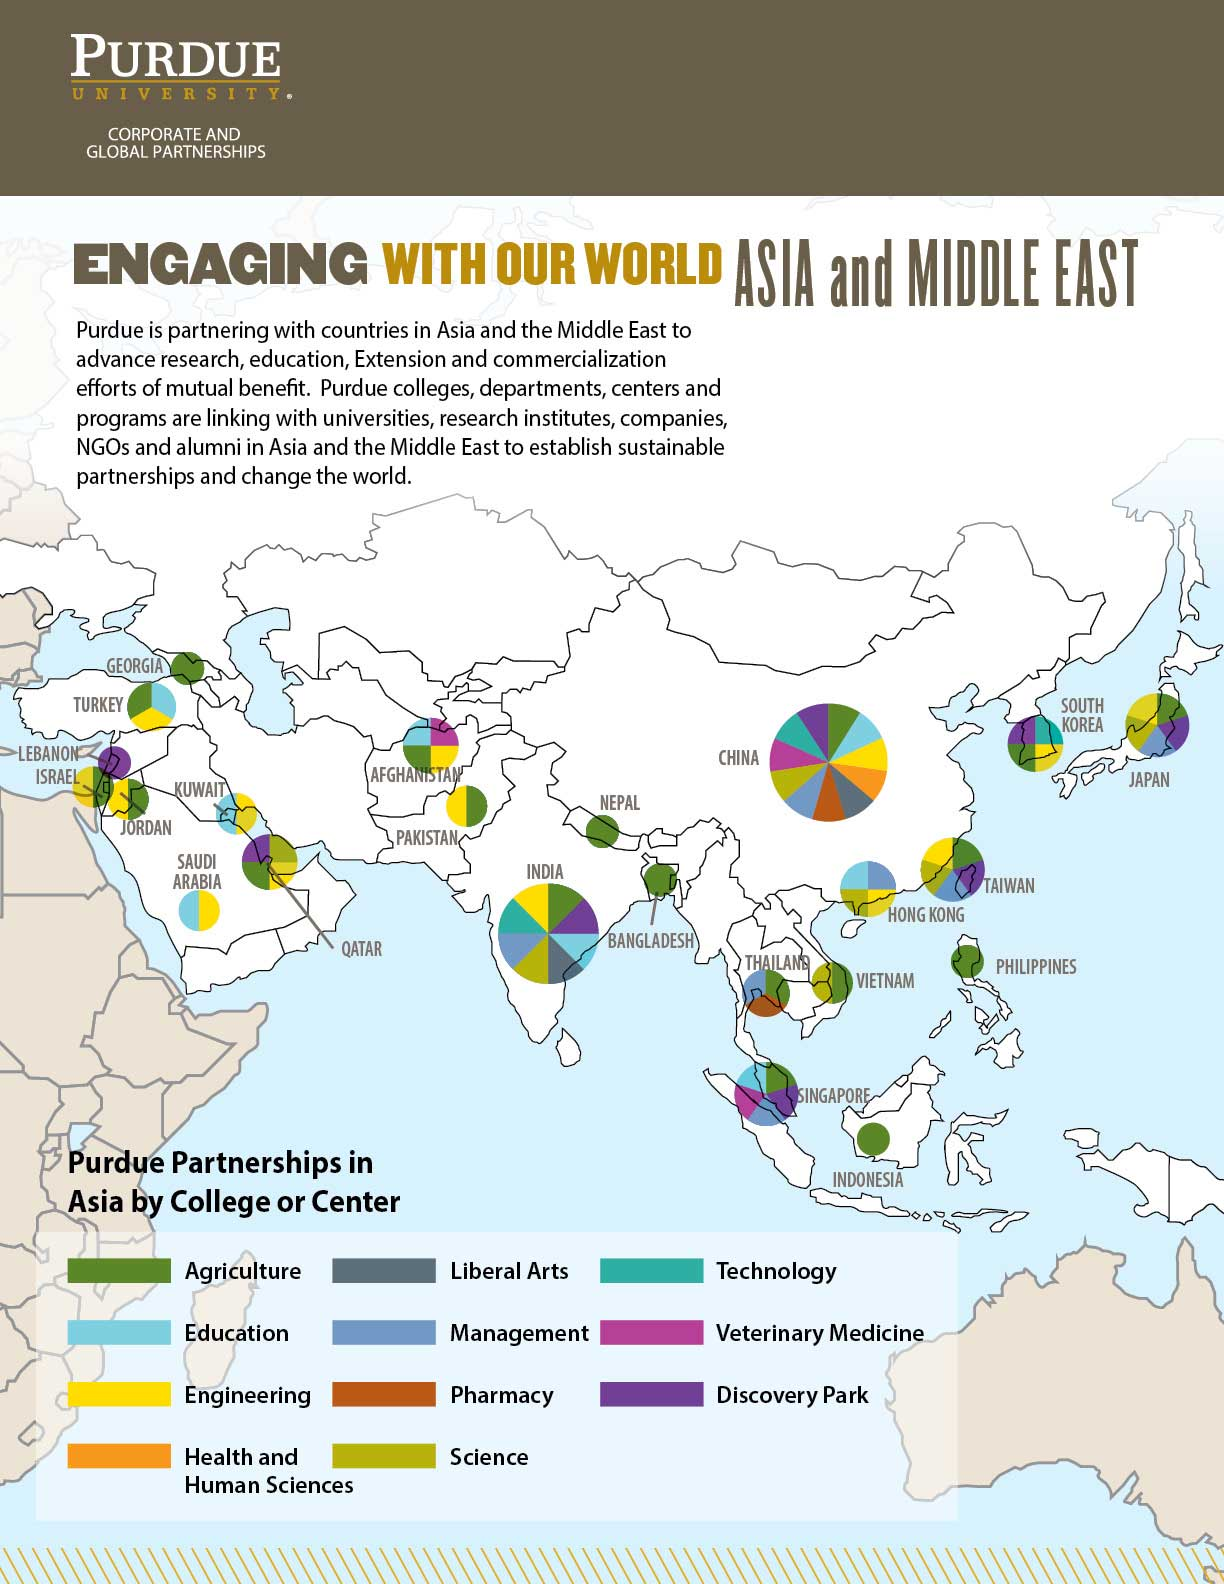 Asia and Middle East Engagement